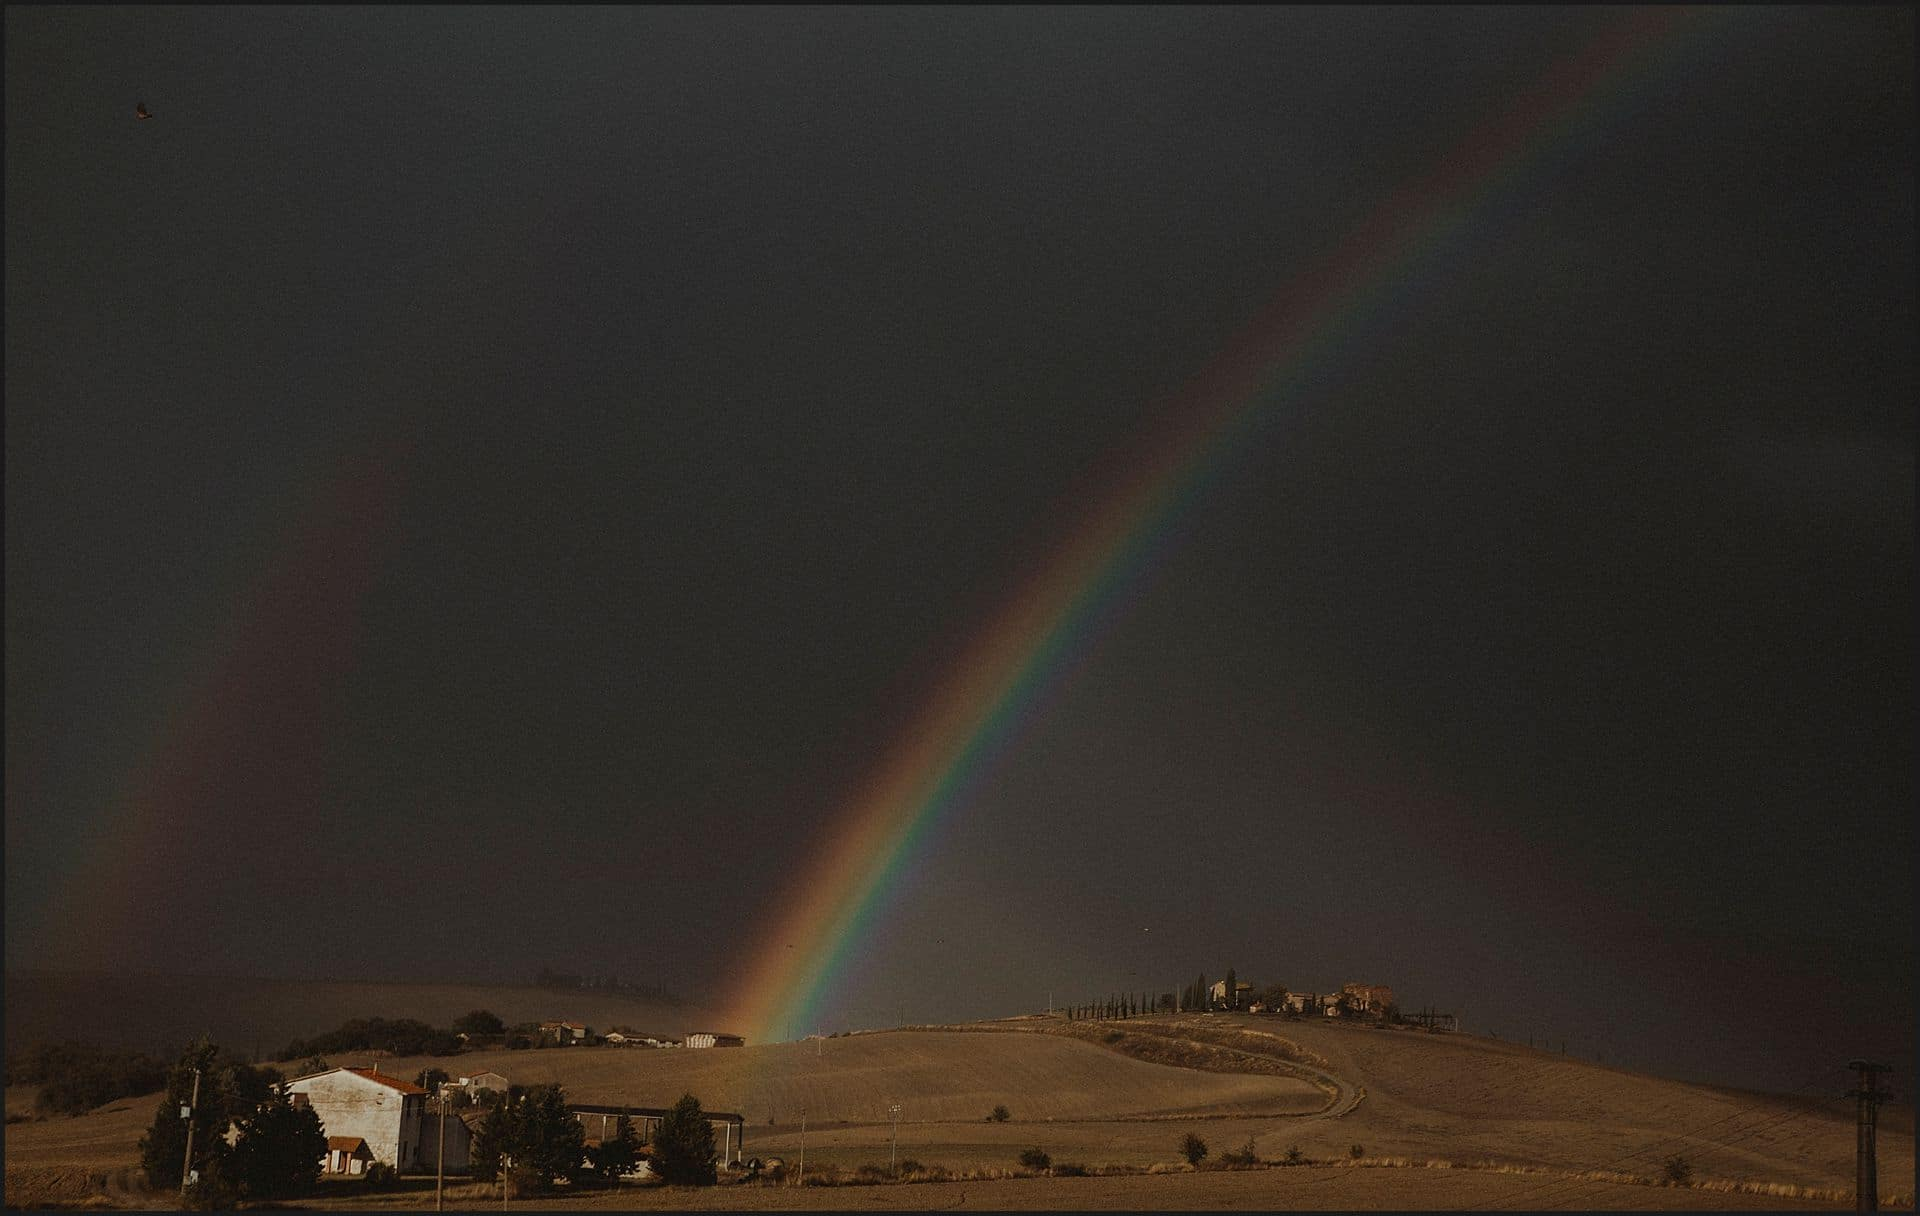 rainbow, tuscany view, locanda in tuscany, wedding, elopement